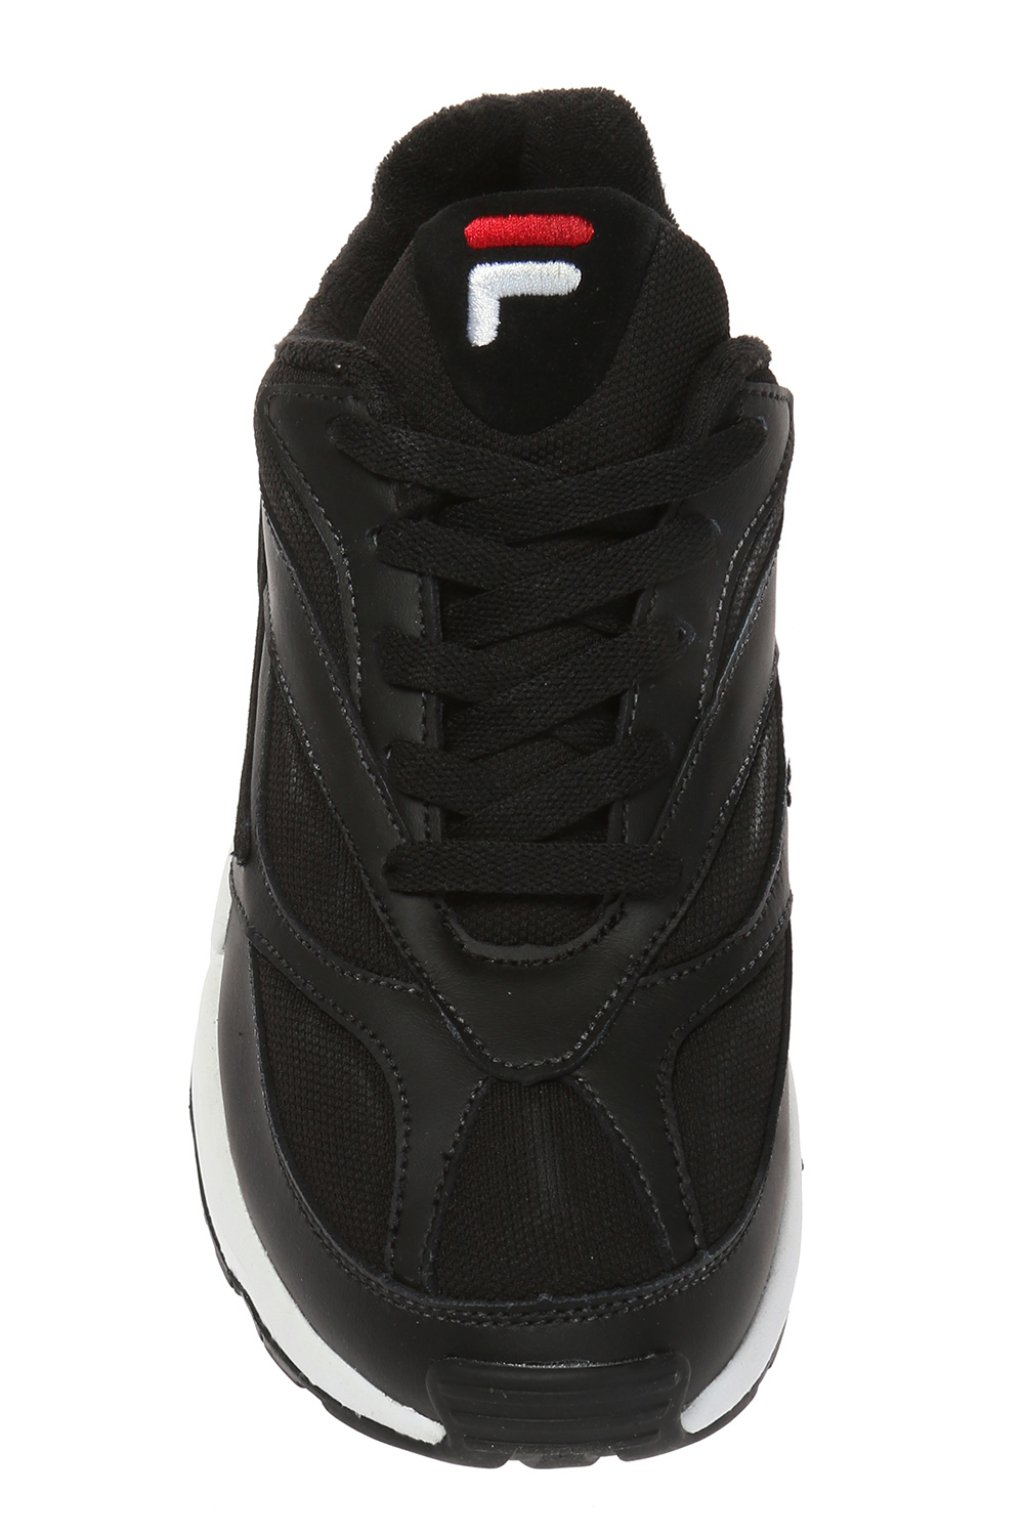 Fila Sport shoes with an embroidered logo